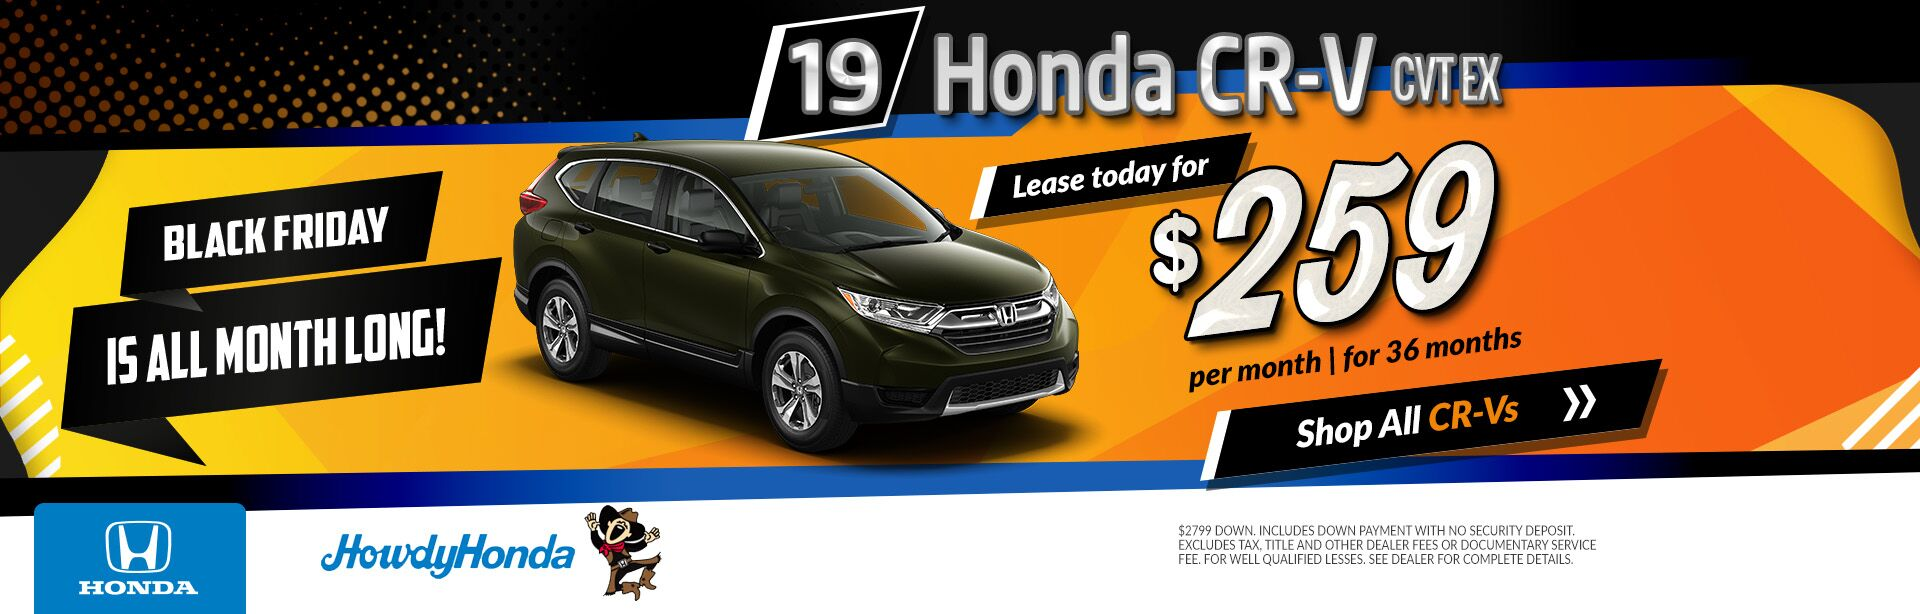 2019 Honda CRV Black Friday Deals